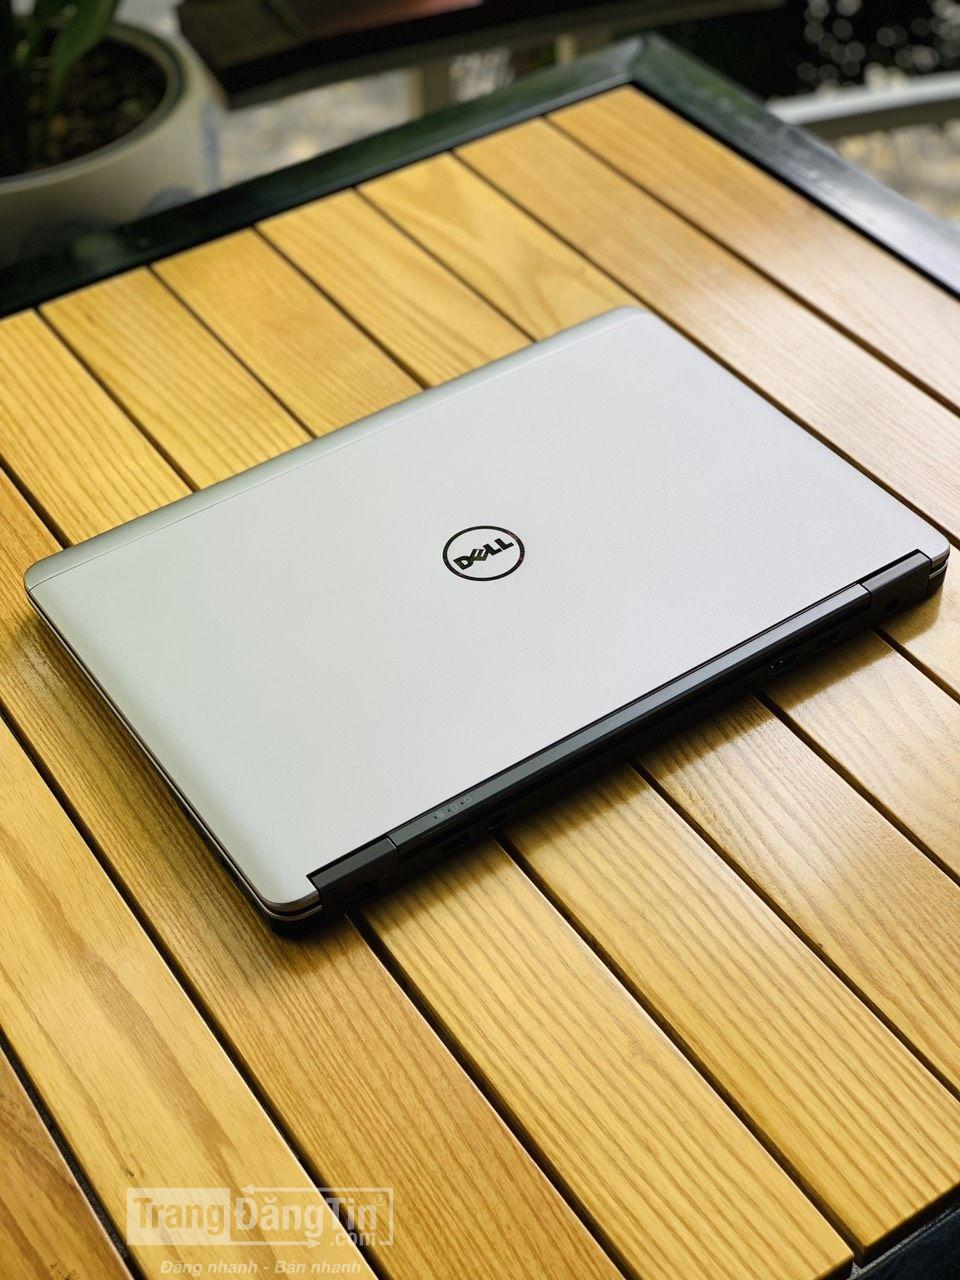 Dell latitude 7440 i5-4310U ram 4gb SSD 256 14ich zin like new